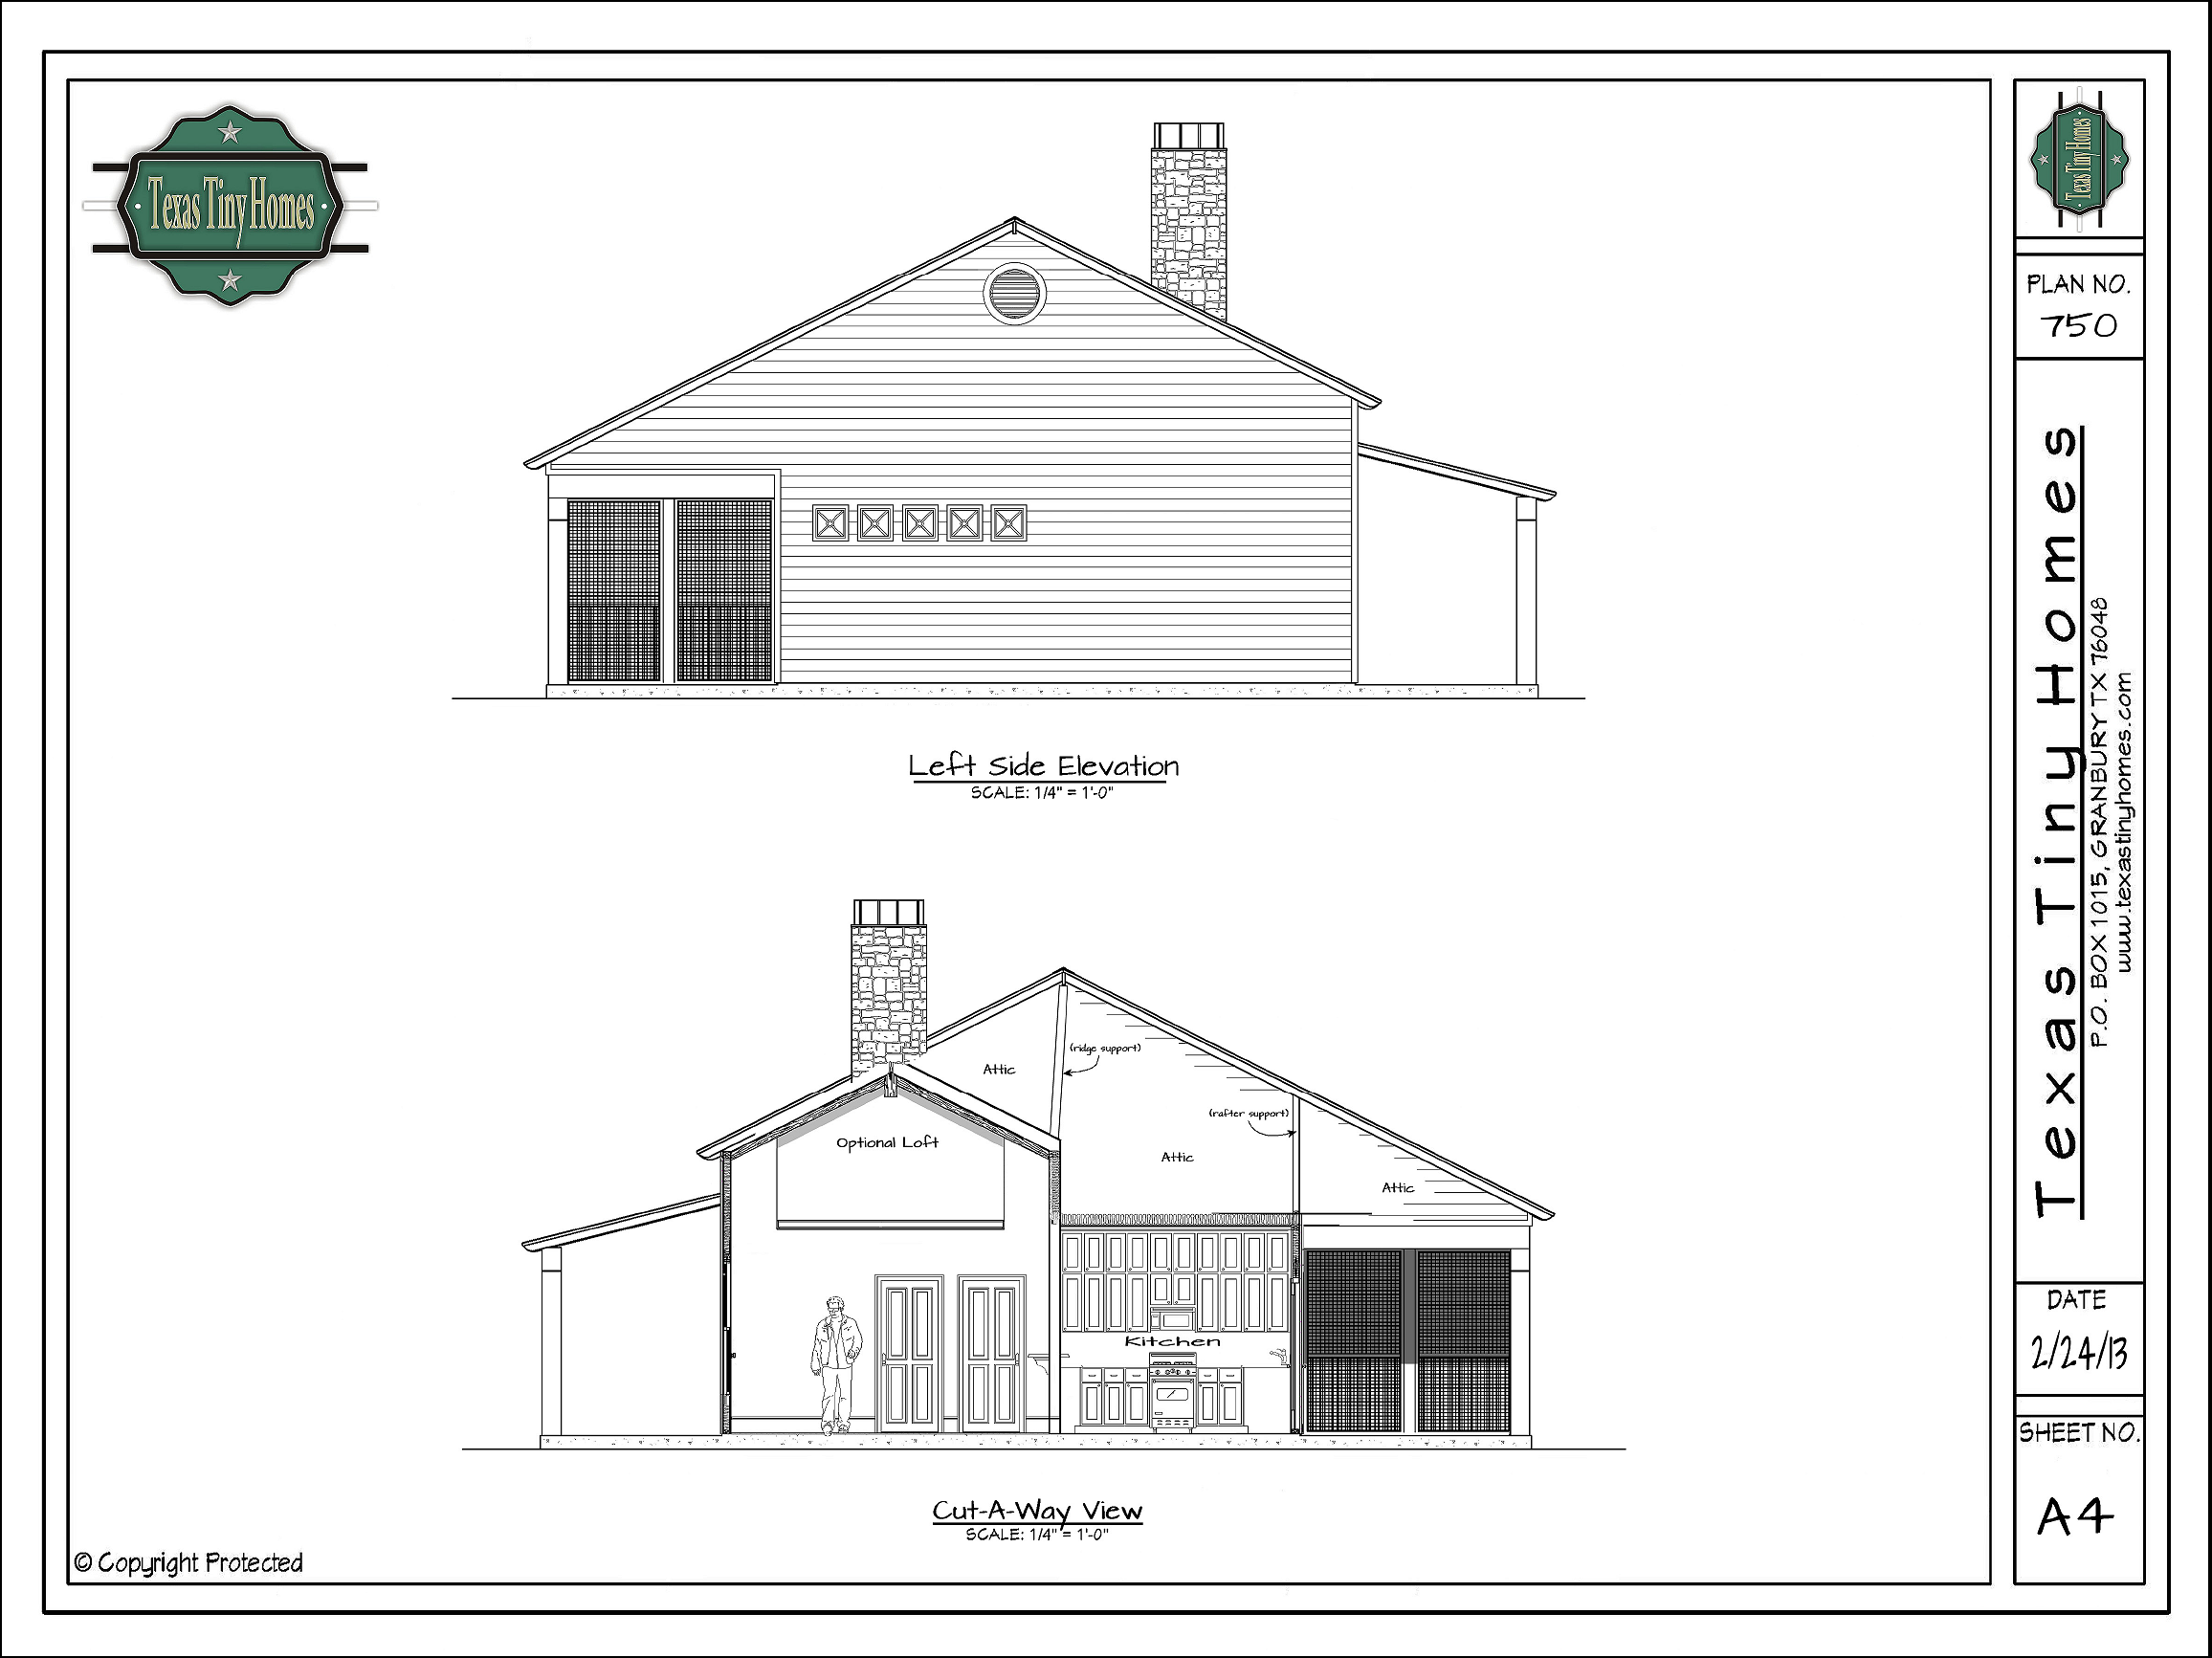 Texas tiny homes plan 750 for Value house plans